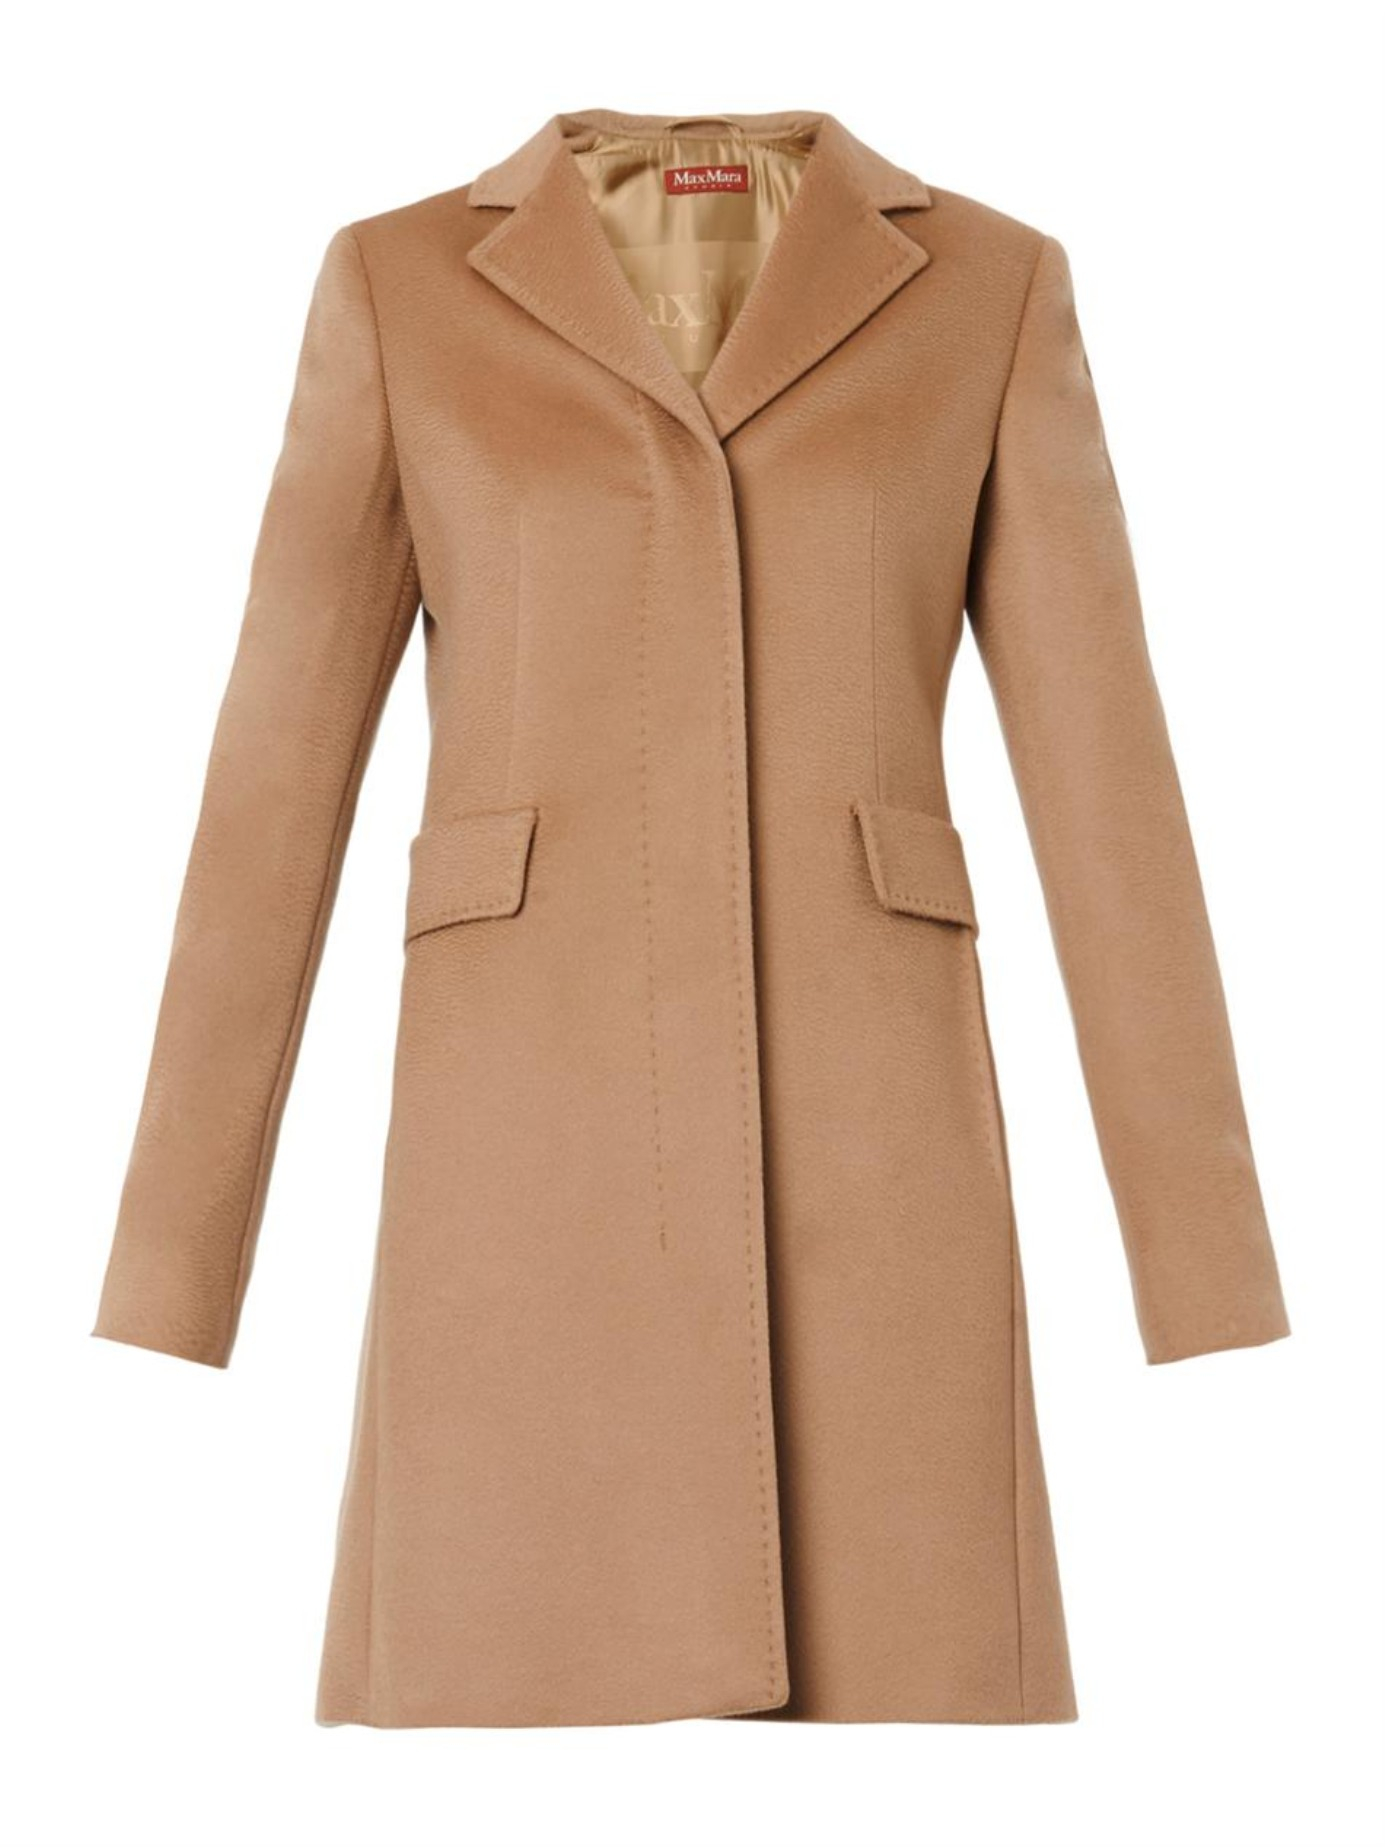 Cheap Sale Shop Offer Discount Shopping Online Max Mara Studio perfectly fitted coat Free Shipping Release Dates Clearance Low Shipping Fee Cheap Sale Low Shipping oSfJcO